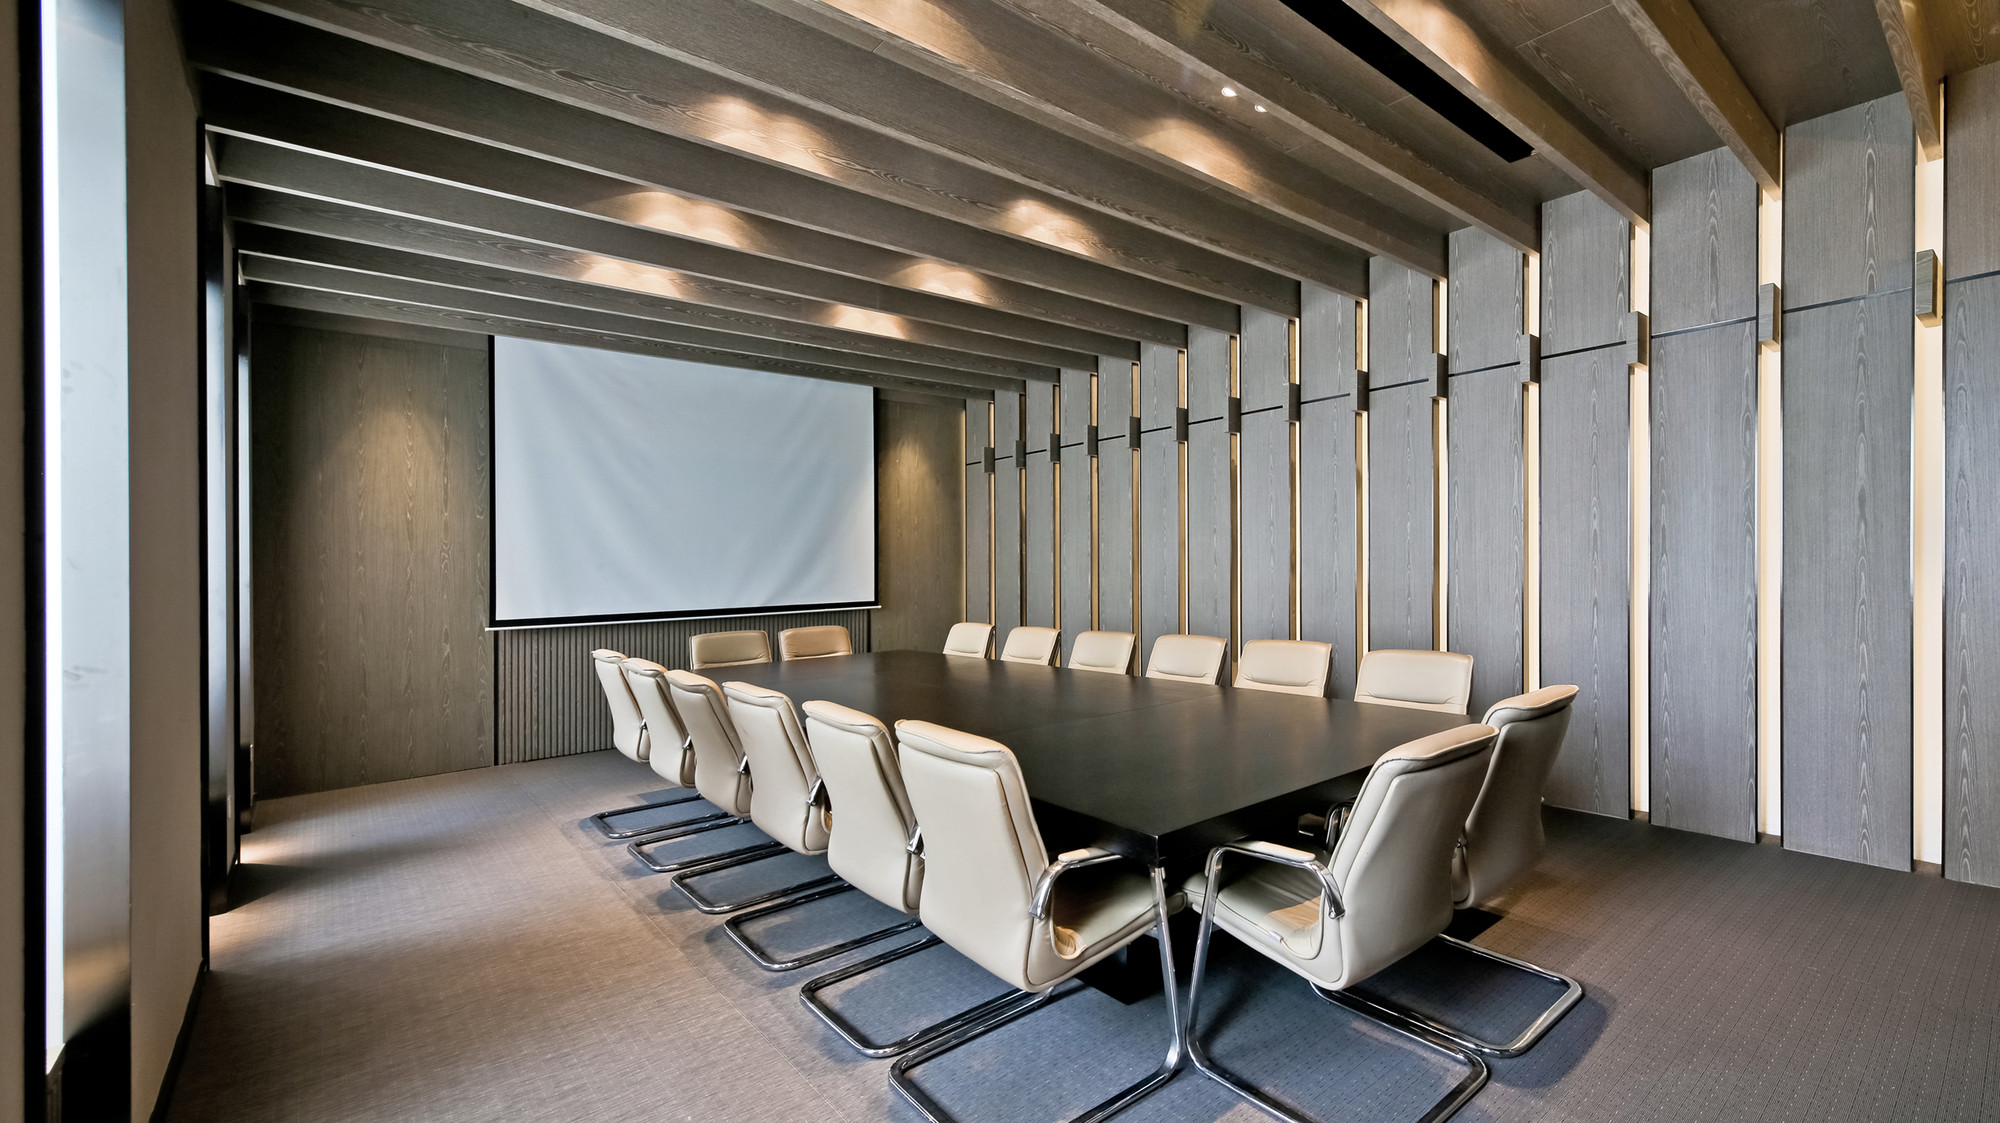 Gallery of jiahe boutique hotel shangai dushe - Interior design ideas for conference rooms ...